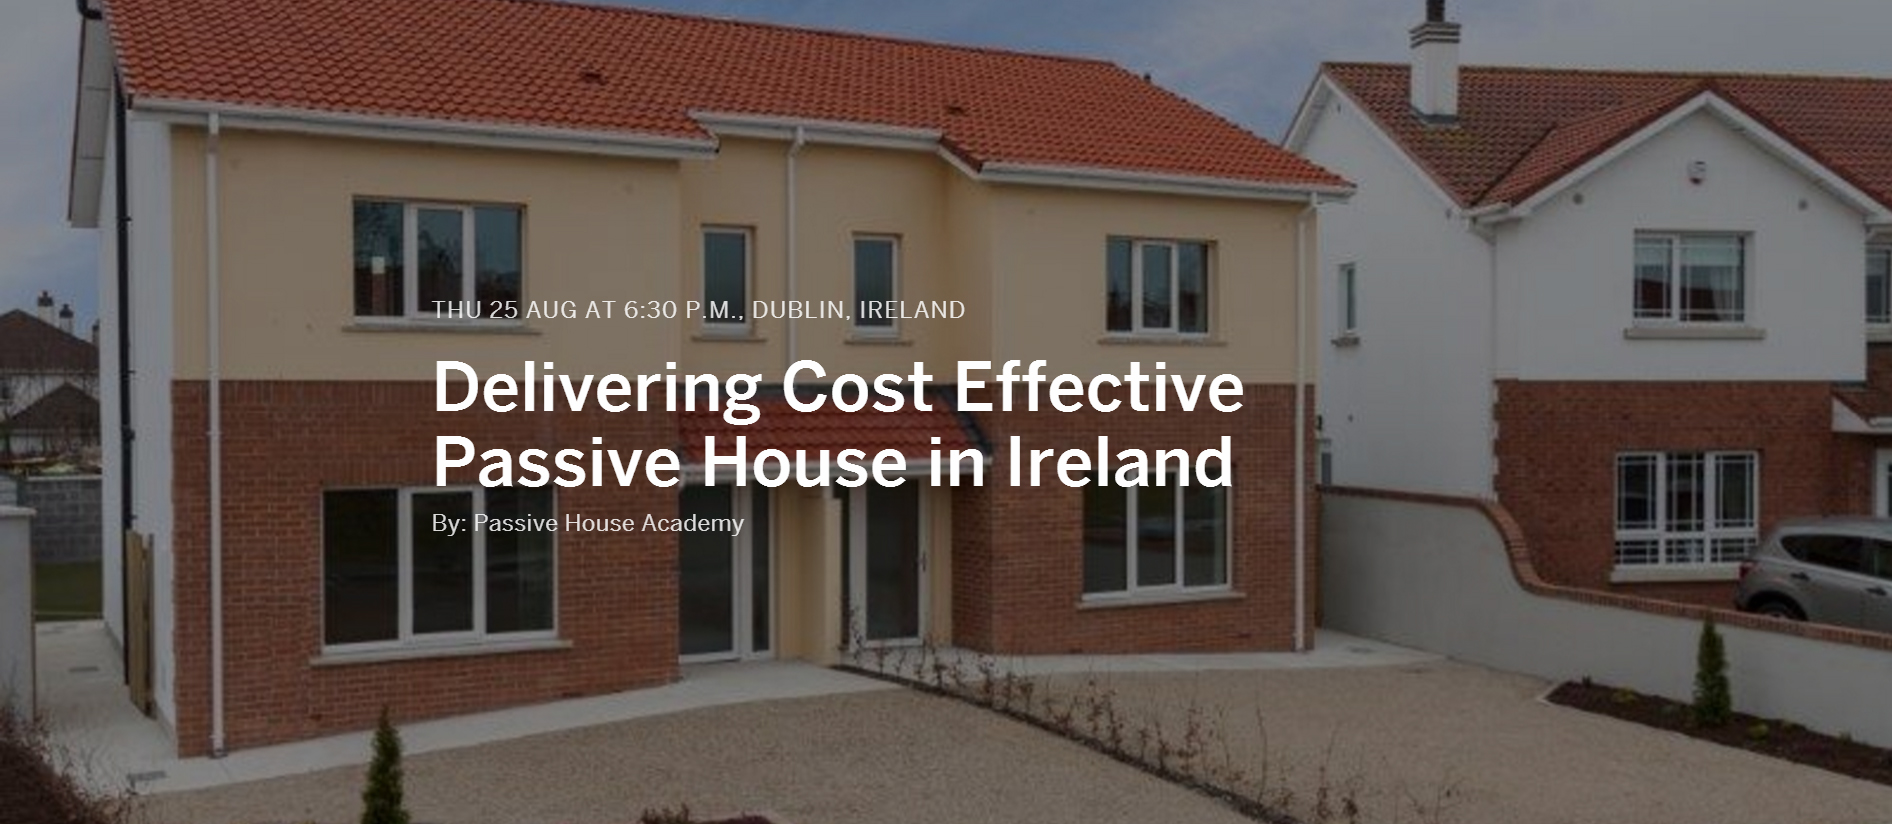 Delivering cost effective passivhaus